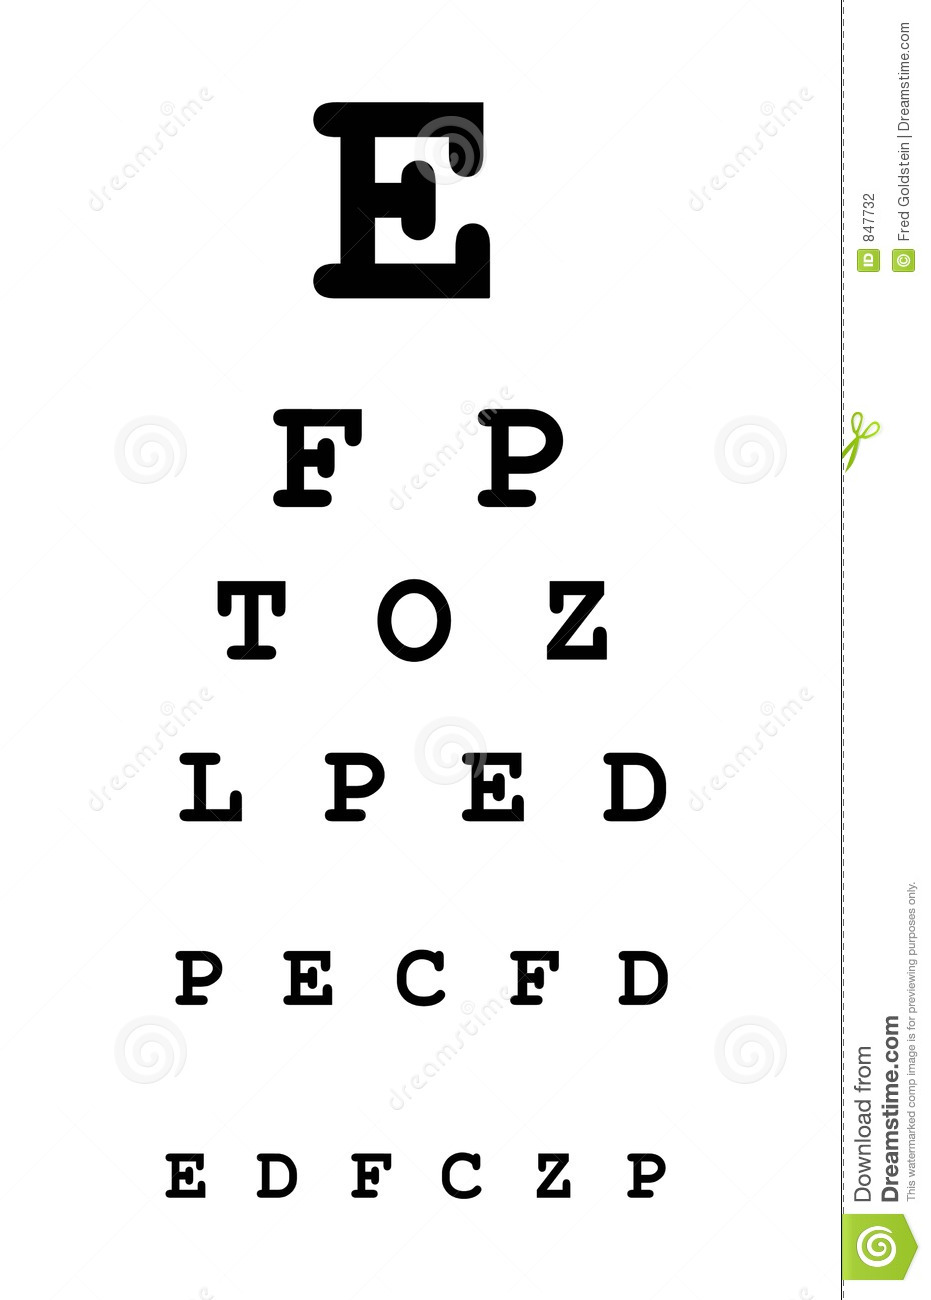 Eye vision test chart download eyecharts to test and improve eye test chart stock photo image of eyes blind character 847732 nvjuhfo Images